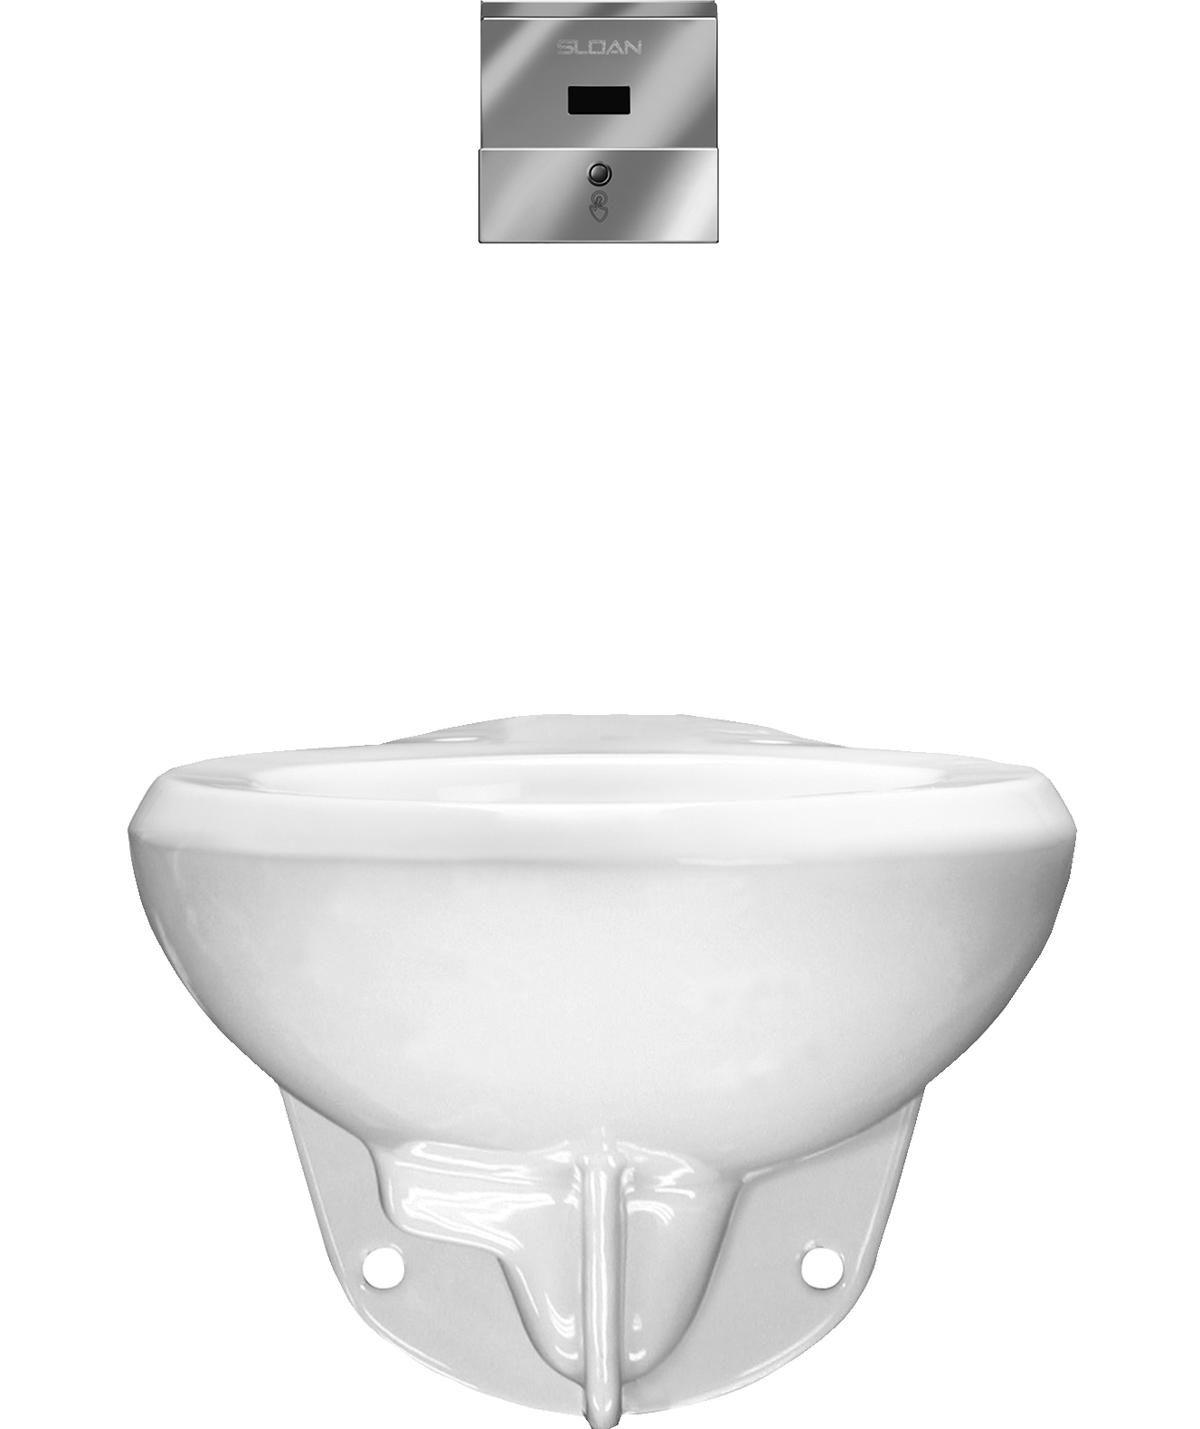 Sloan Rear Spud Wall Hung Toilet Fixtures, on Designer Pages